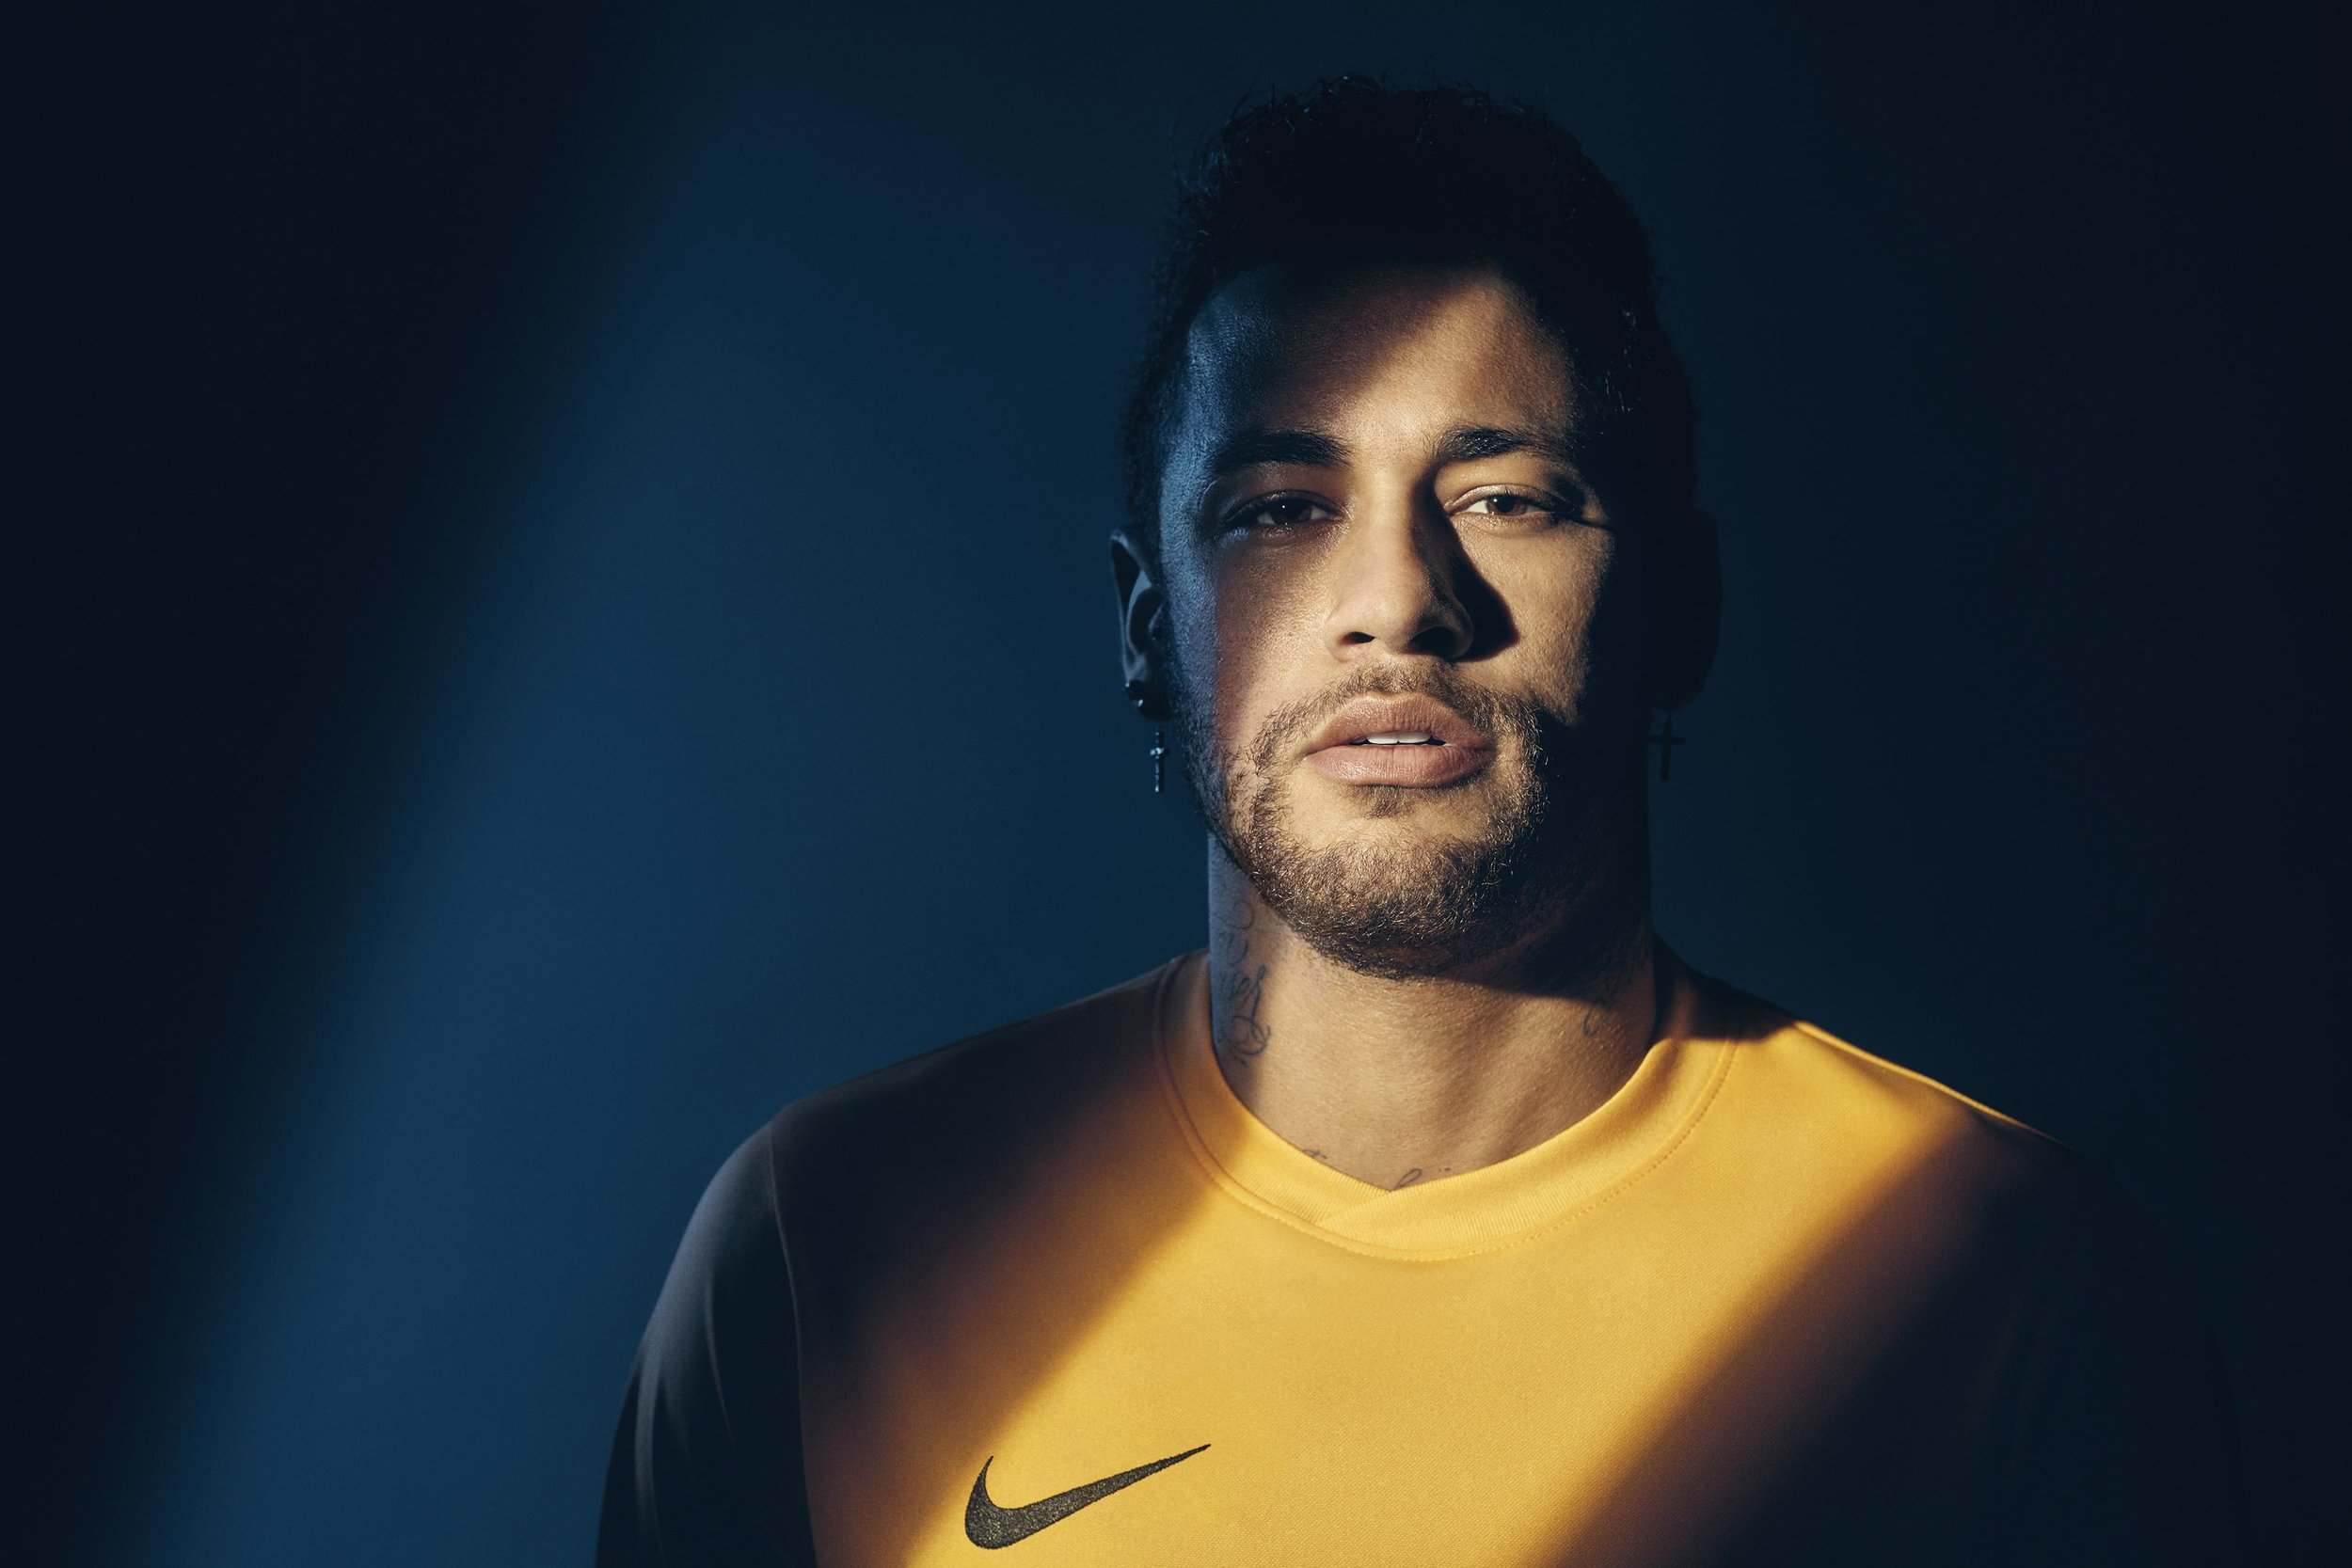 Neymar da Silva Santos Júnior, commonly known as Neymar Jr. or simply Neymar, is a Brazilian professional footballer who plays as a forward for French club Paris Saint-Germain and the Brazil national team.